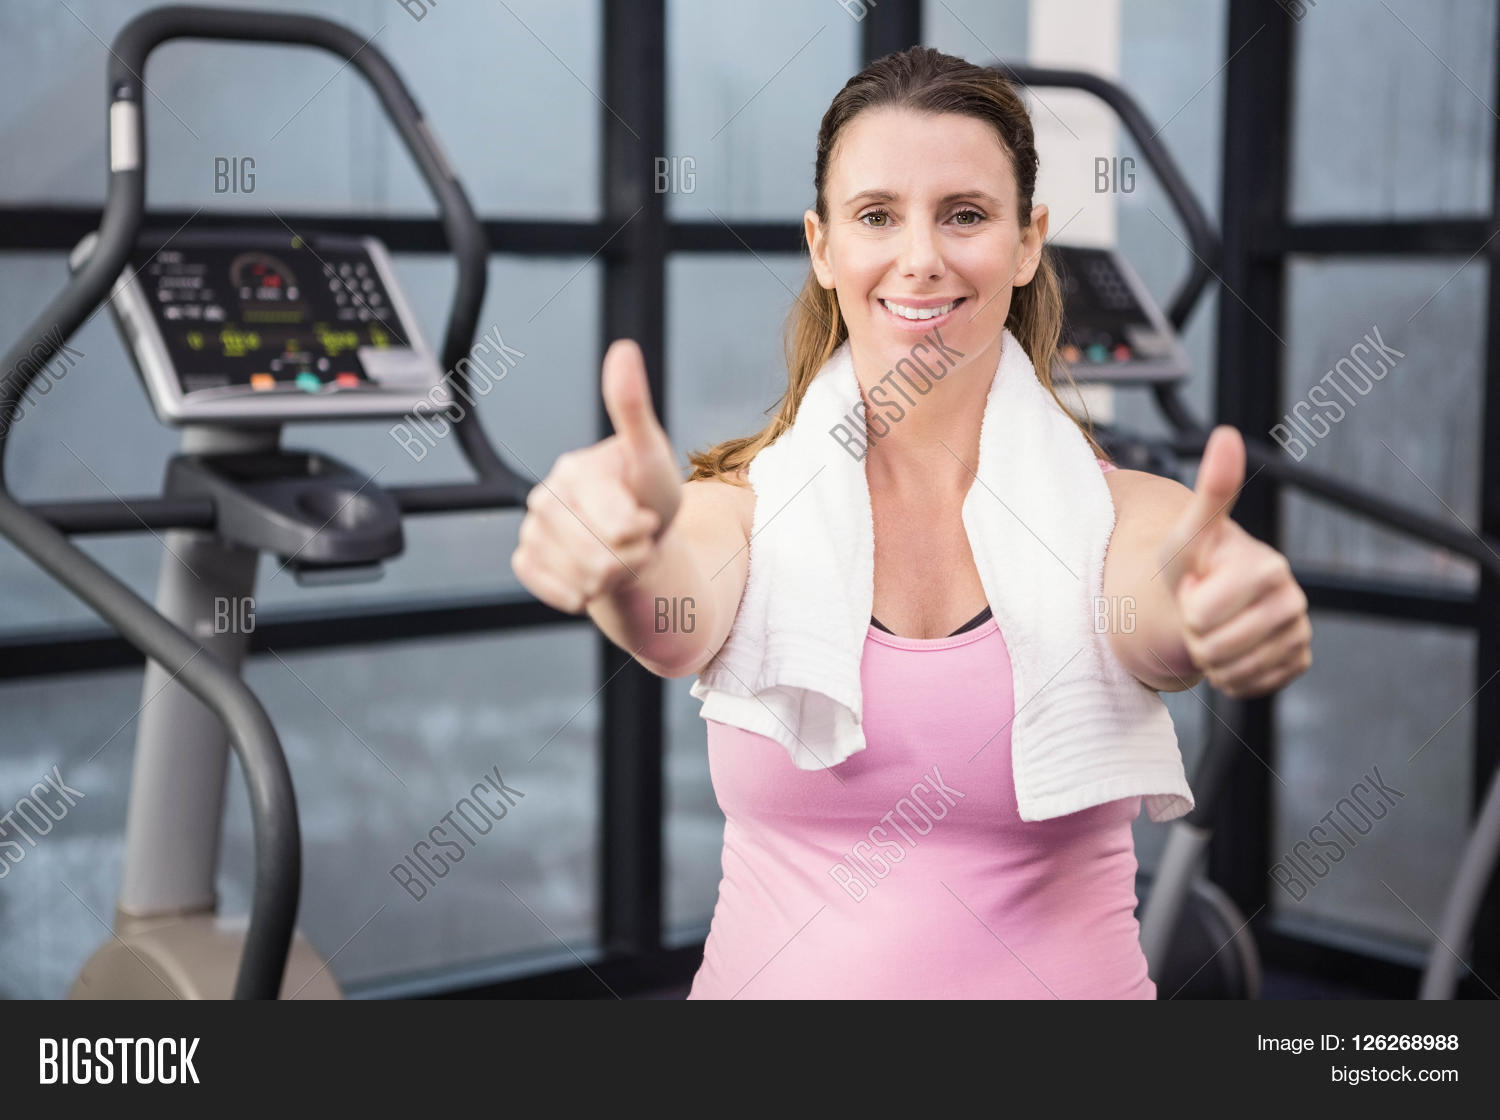 Happy pregnant woman showing thumbs up at the gym